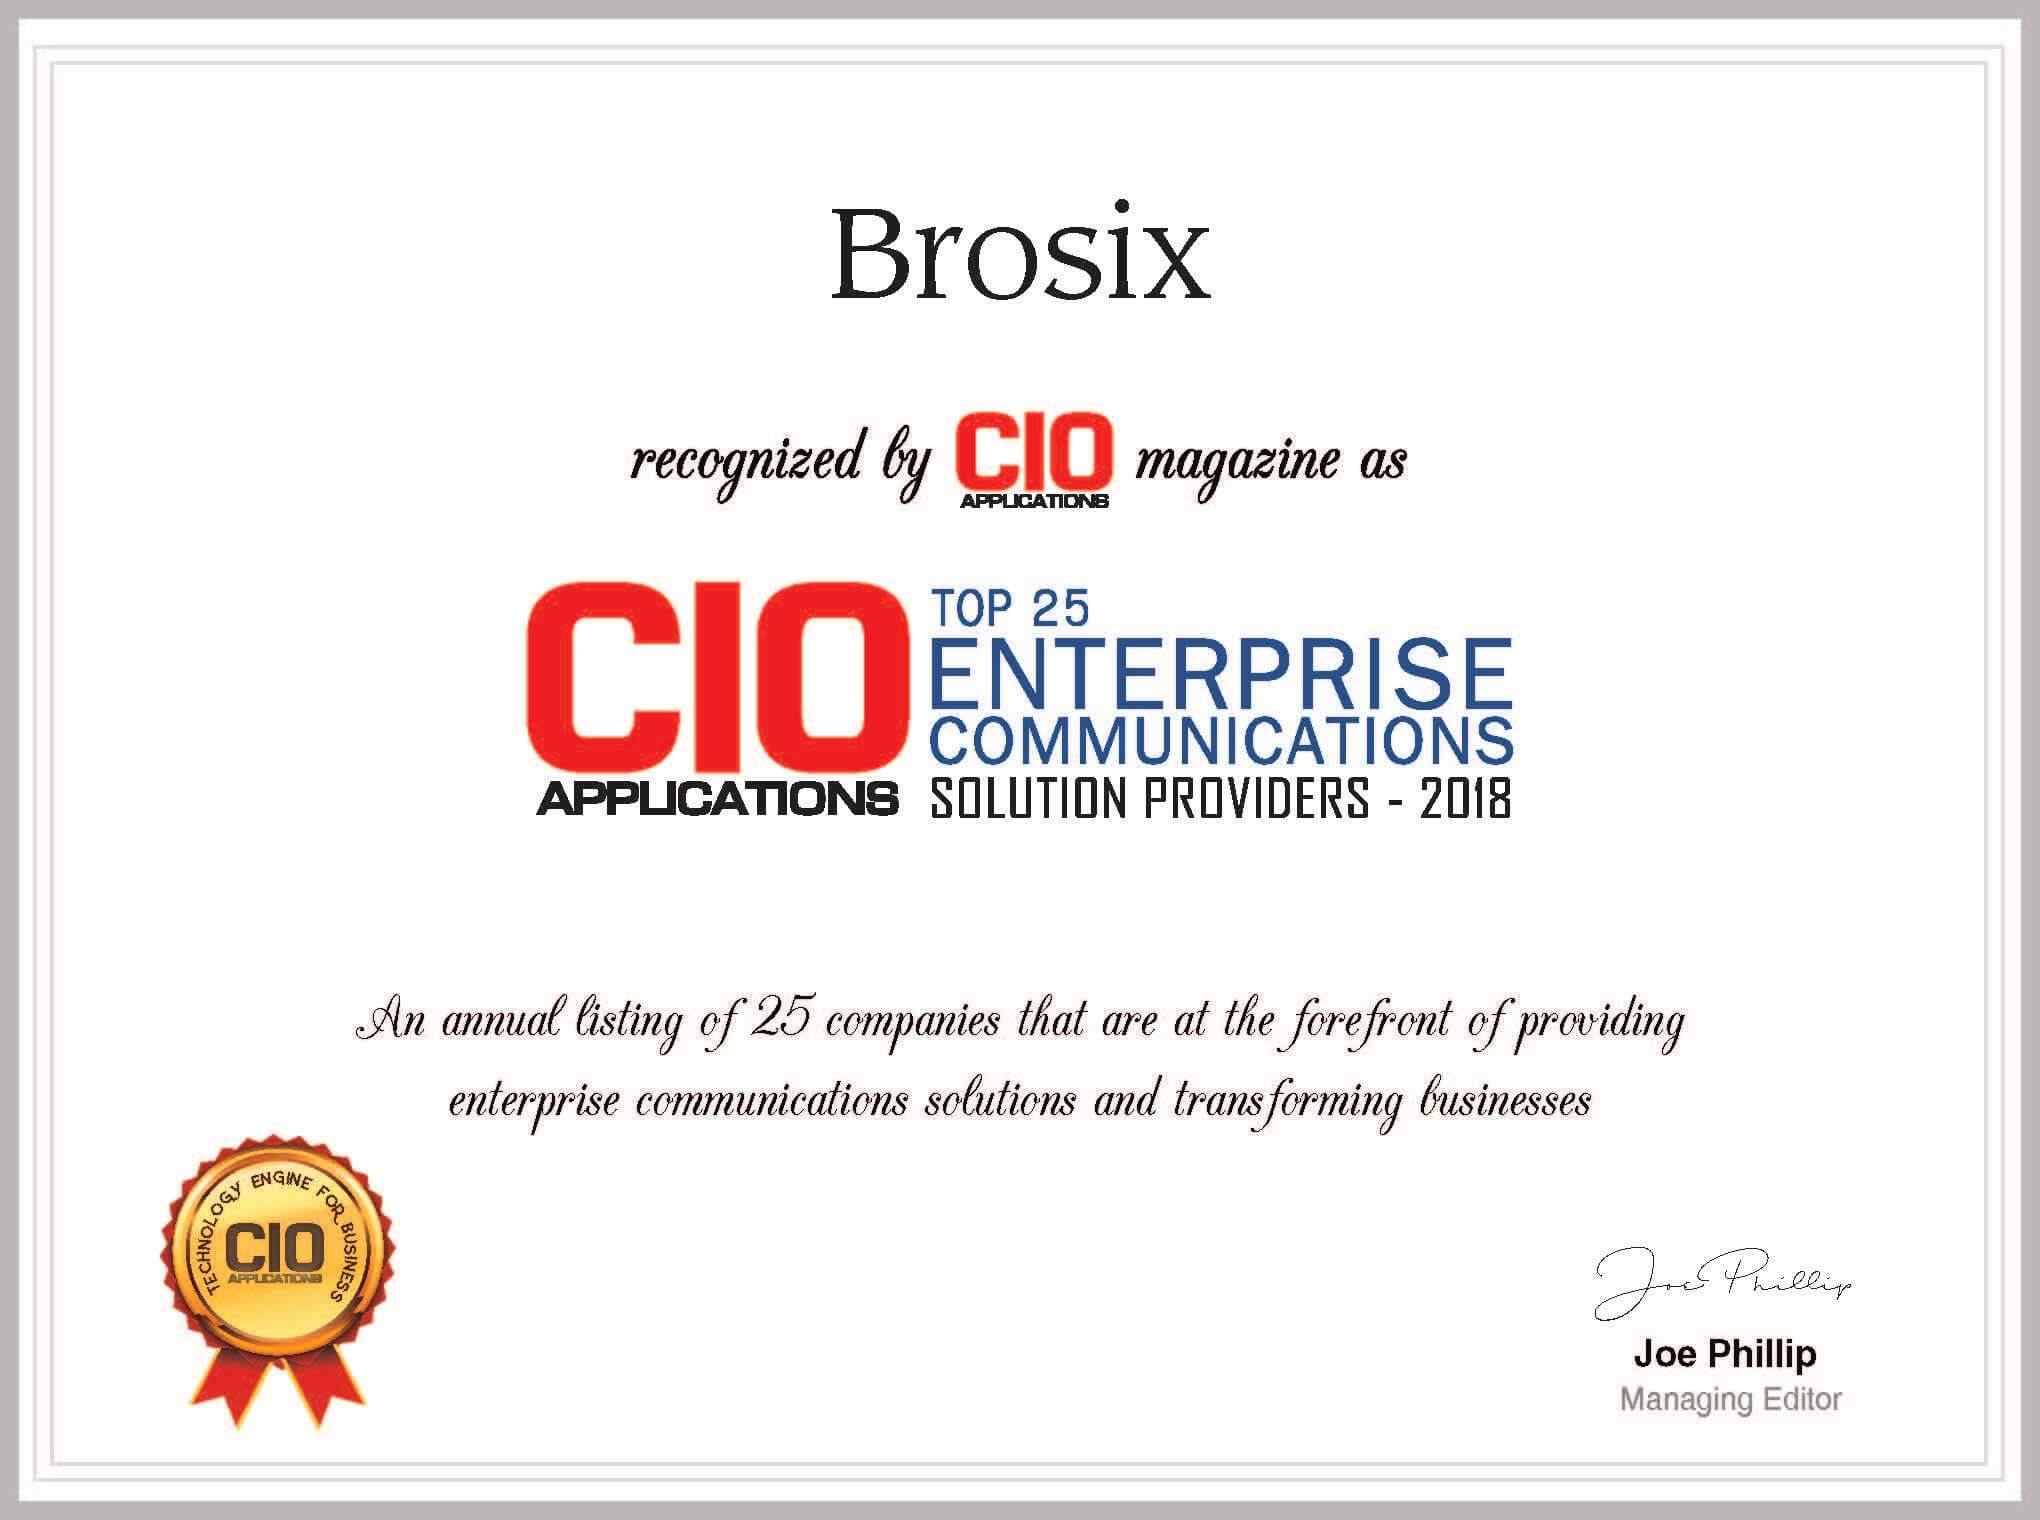 Brosix among one of 25 enterprise communication solutions